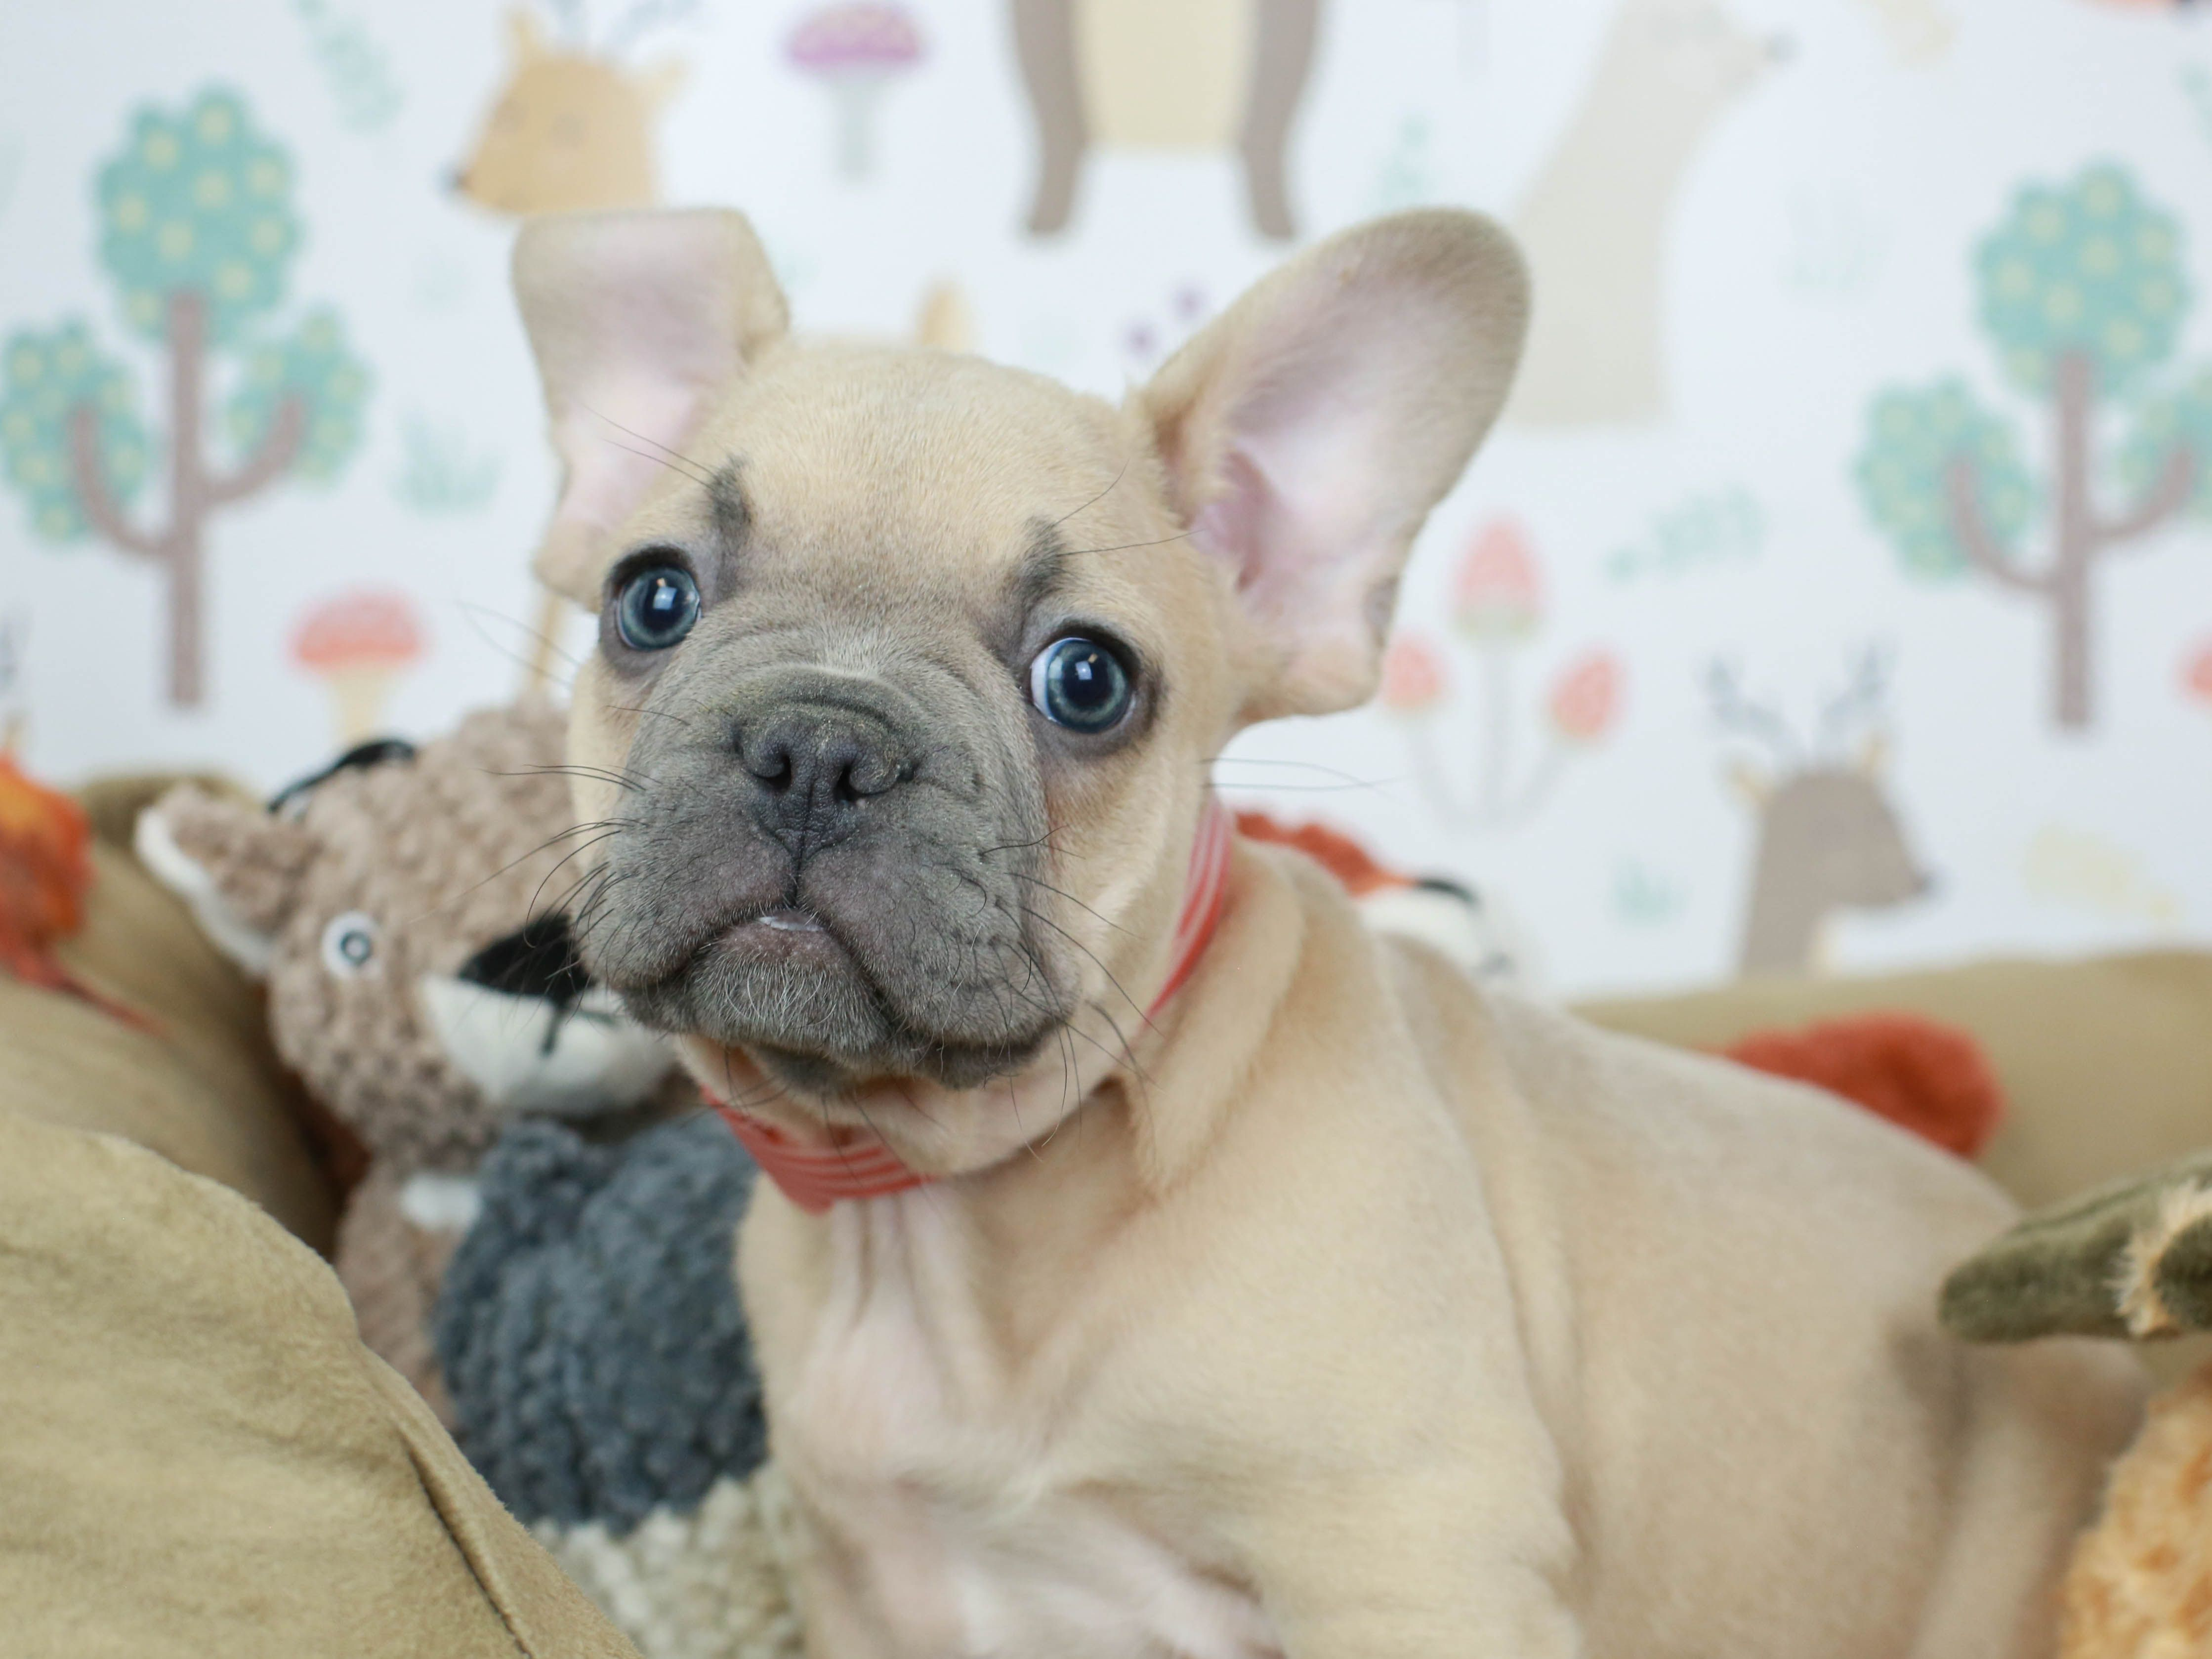 French Bulldogs puppies come in several different colors